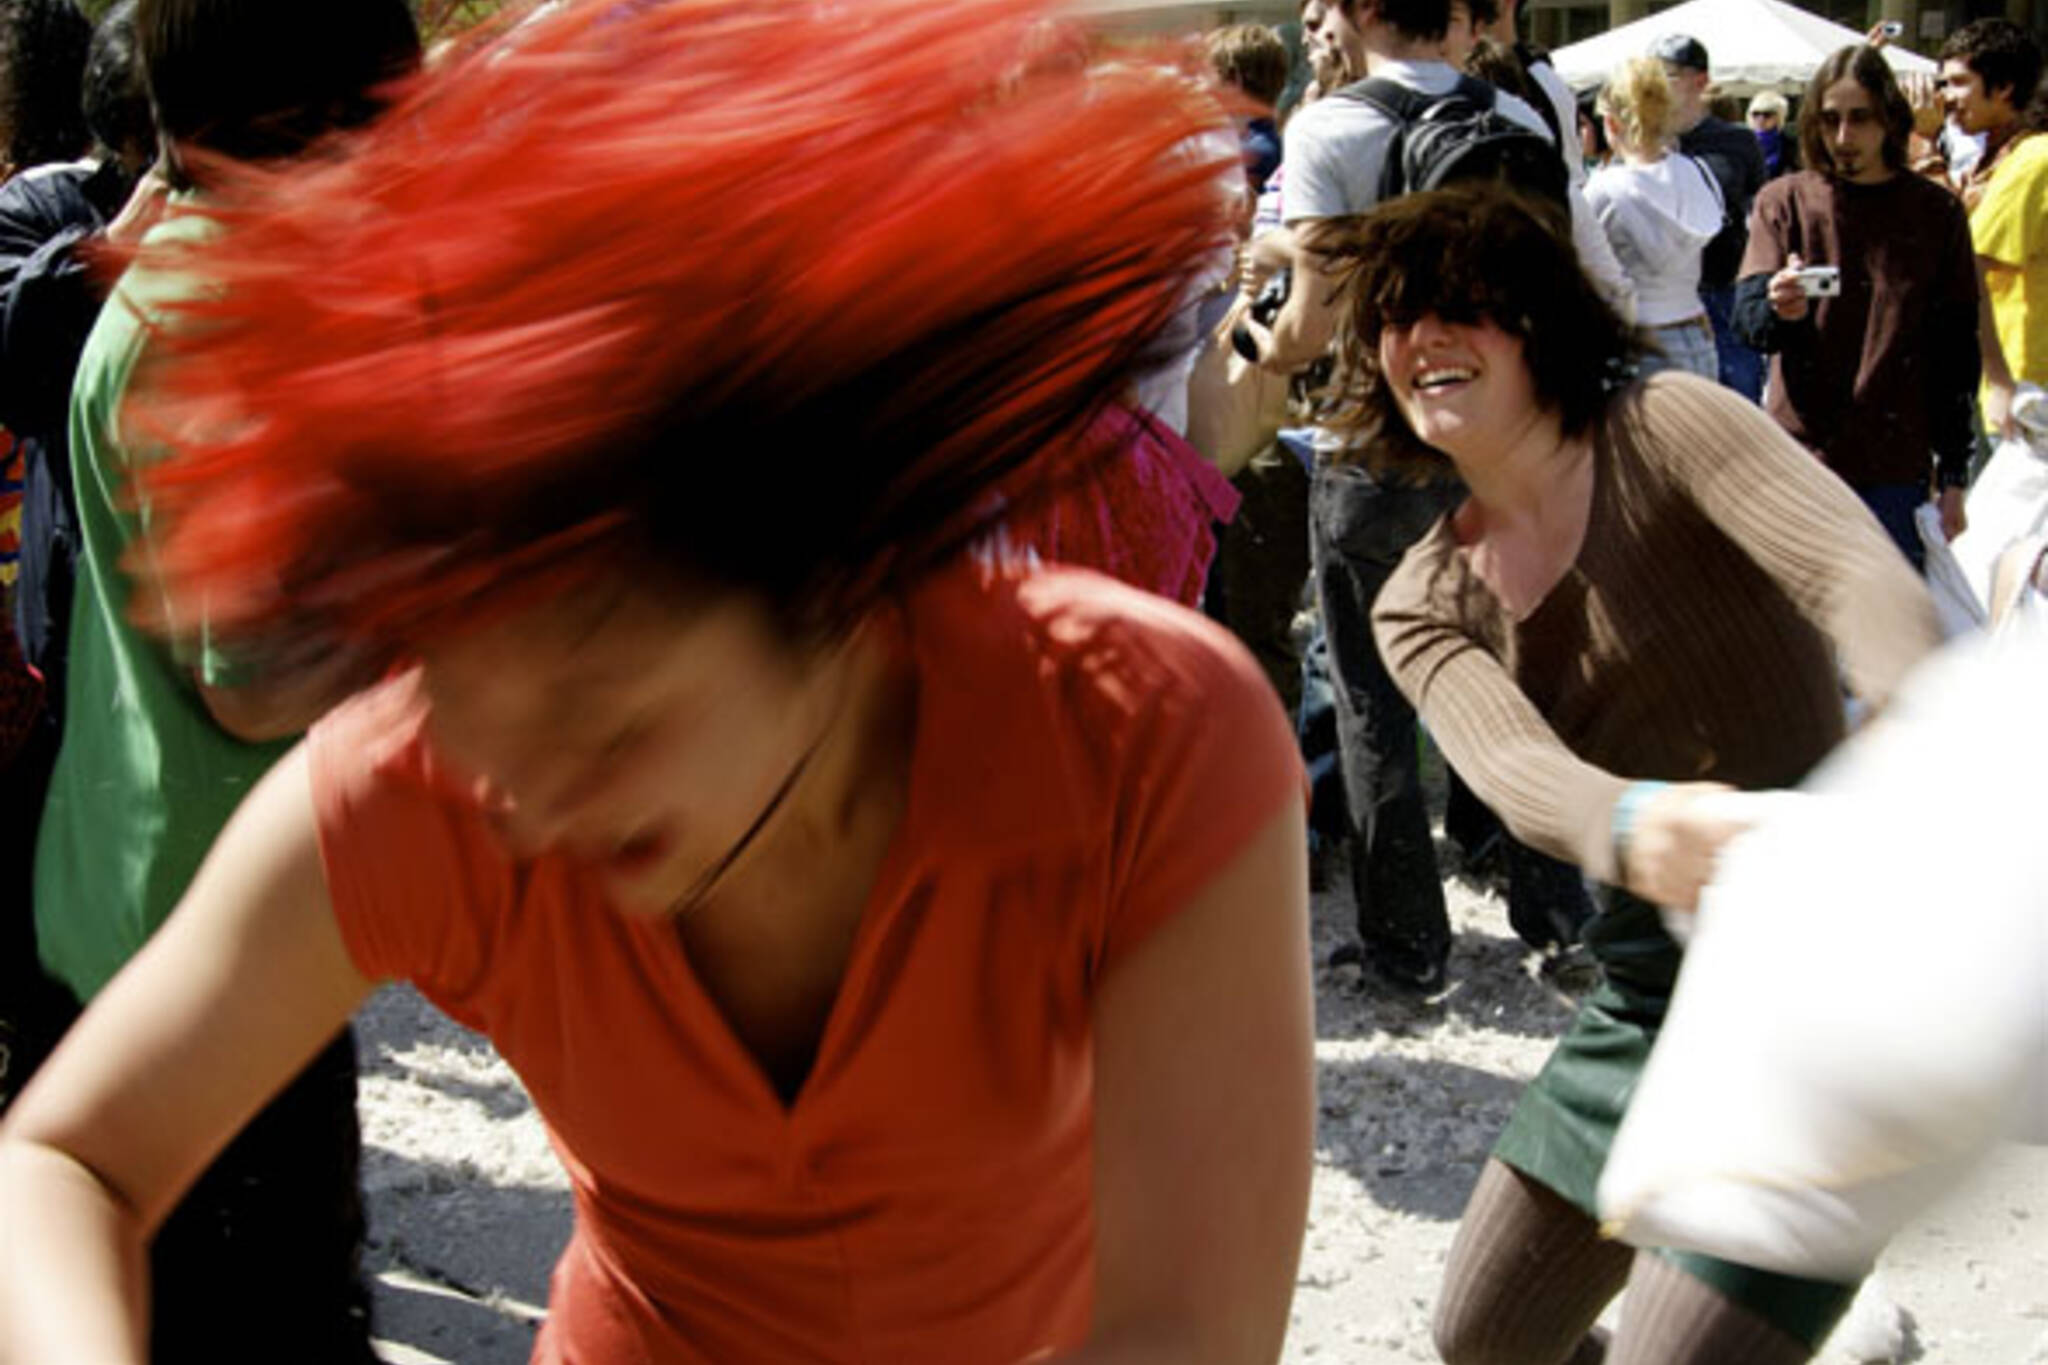 20080530_Pillowfight.jpg